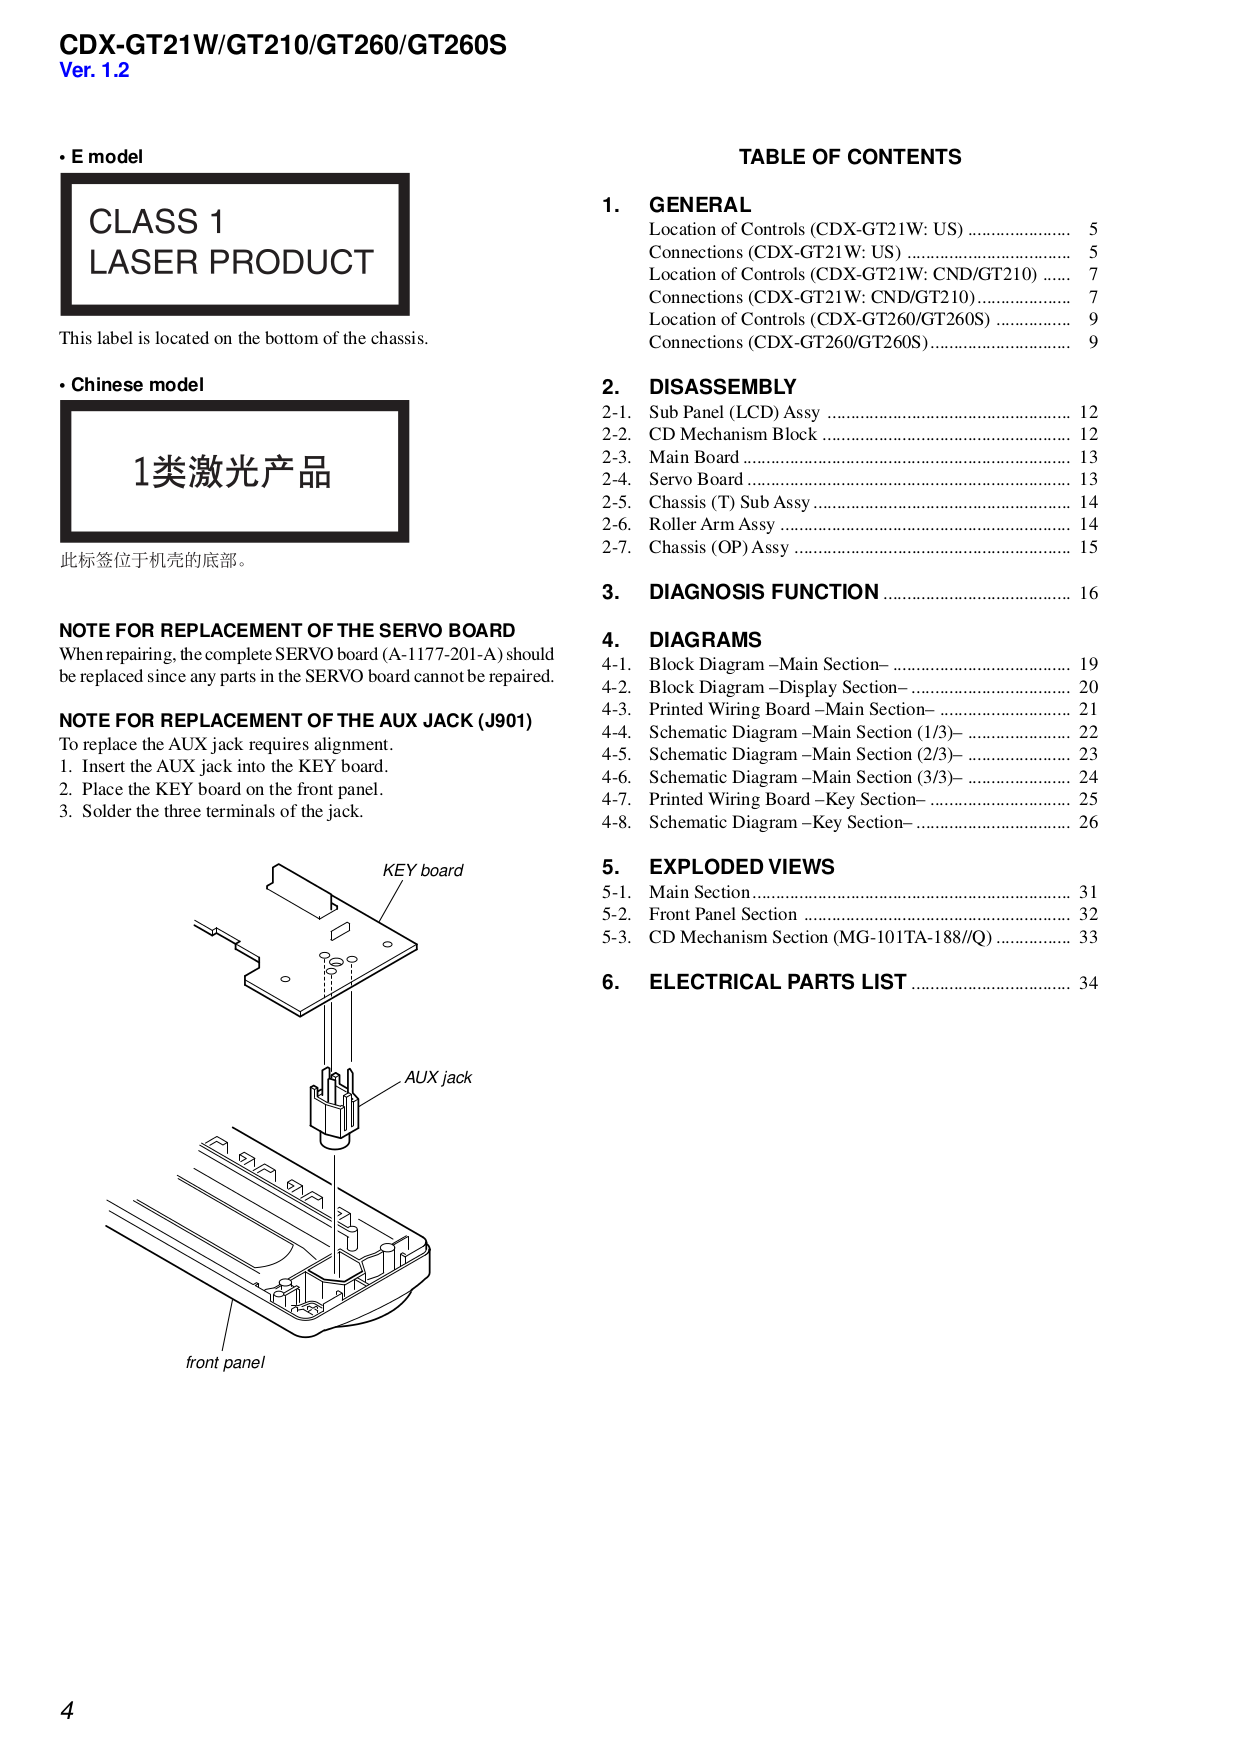 cdx gt21w gt210 gt260.pdf 3 pdf manual for sony car receiver cdx gt210 sony cdx gt210 wiring diagram at couponss.co